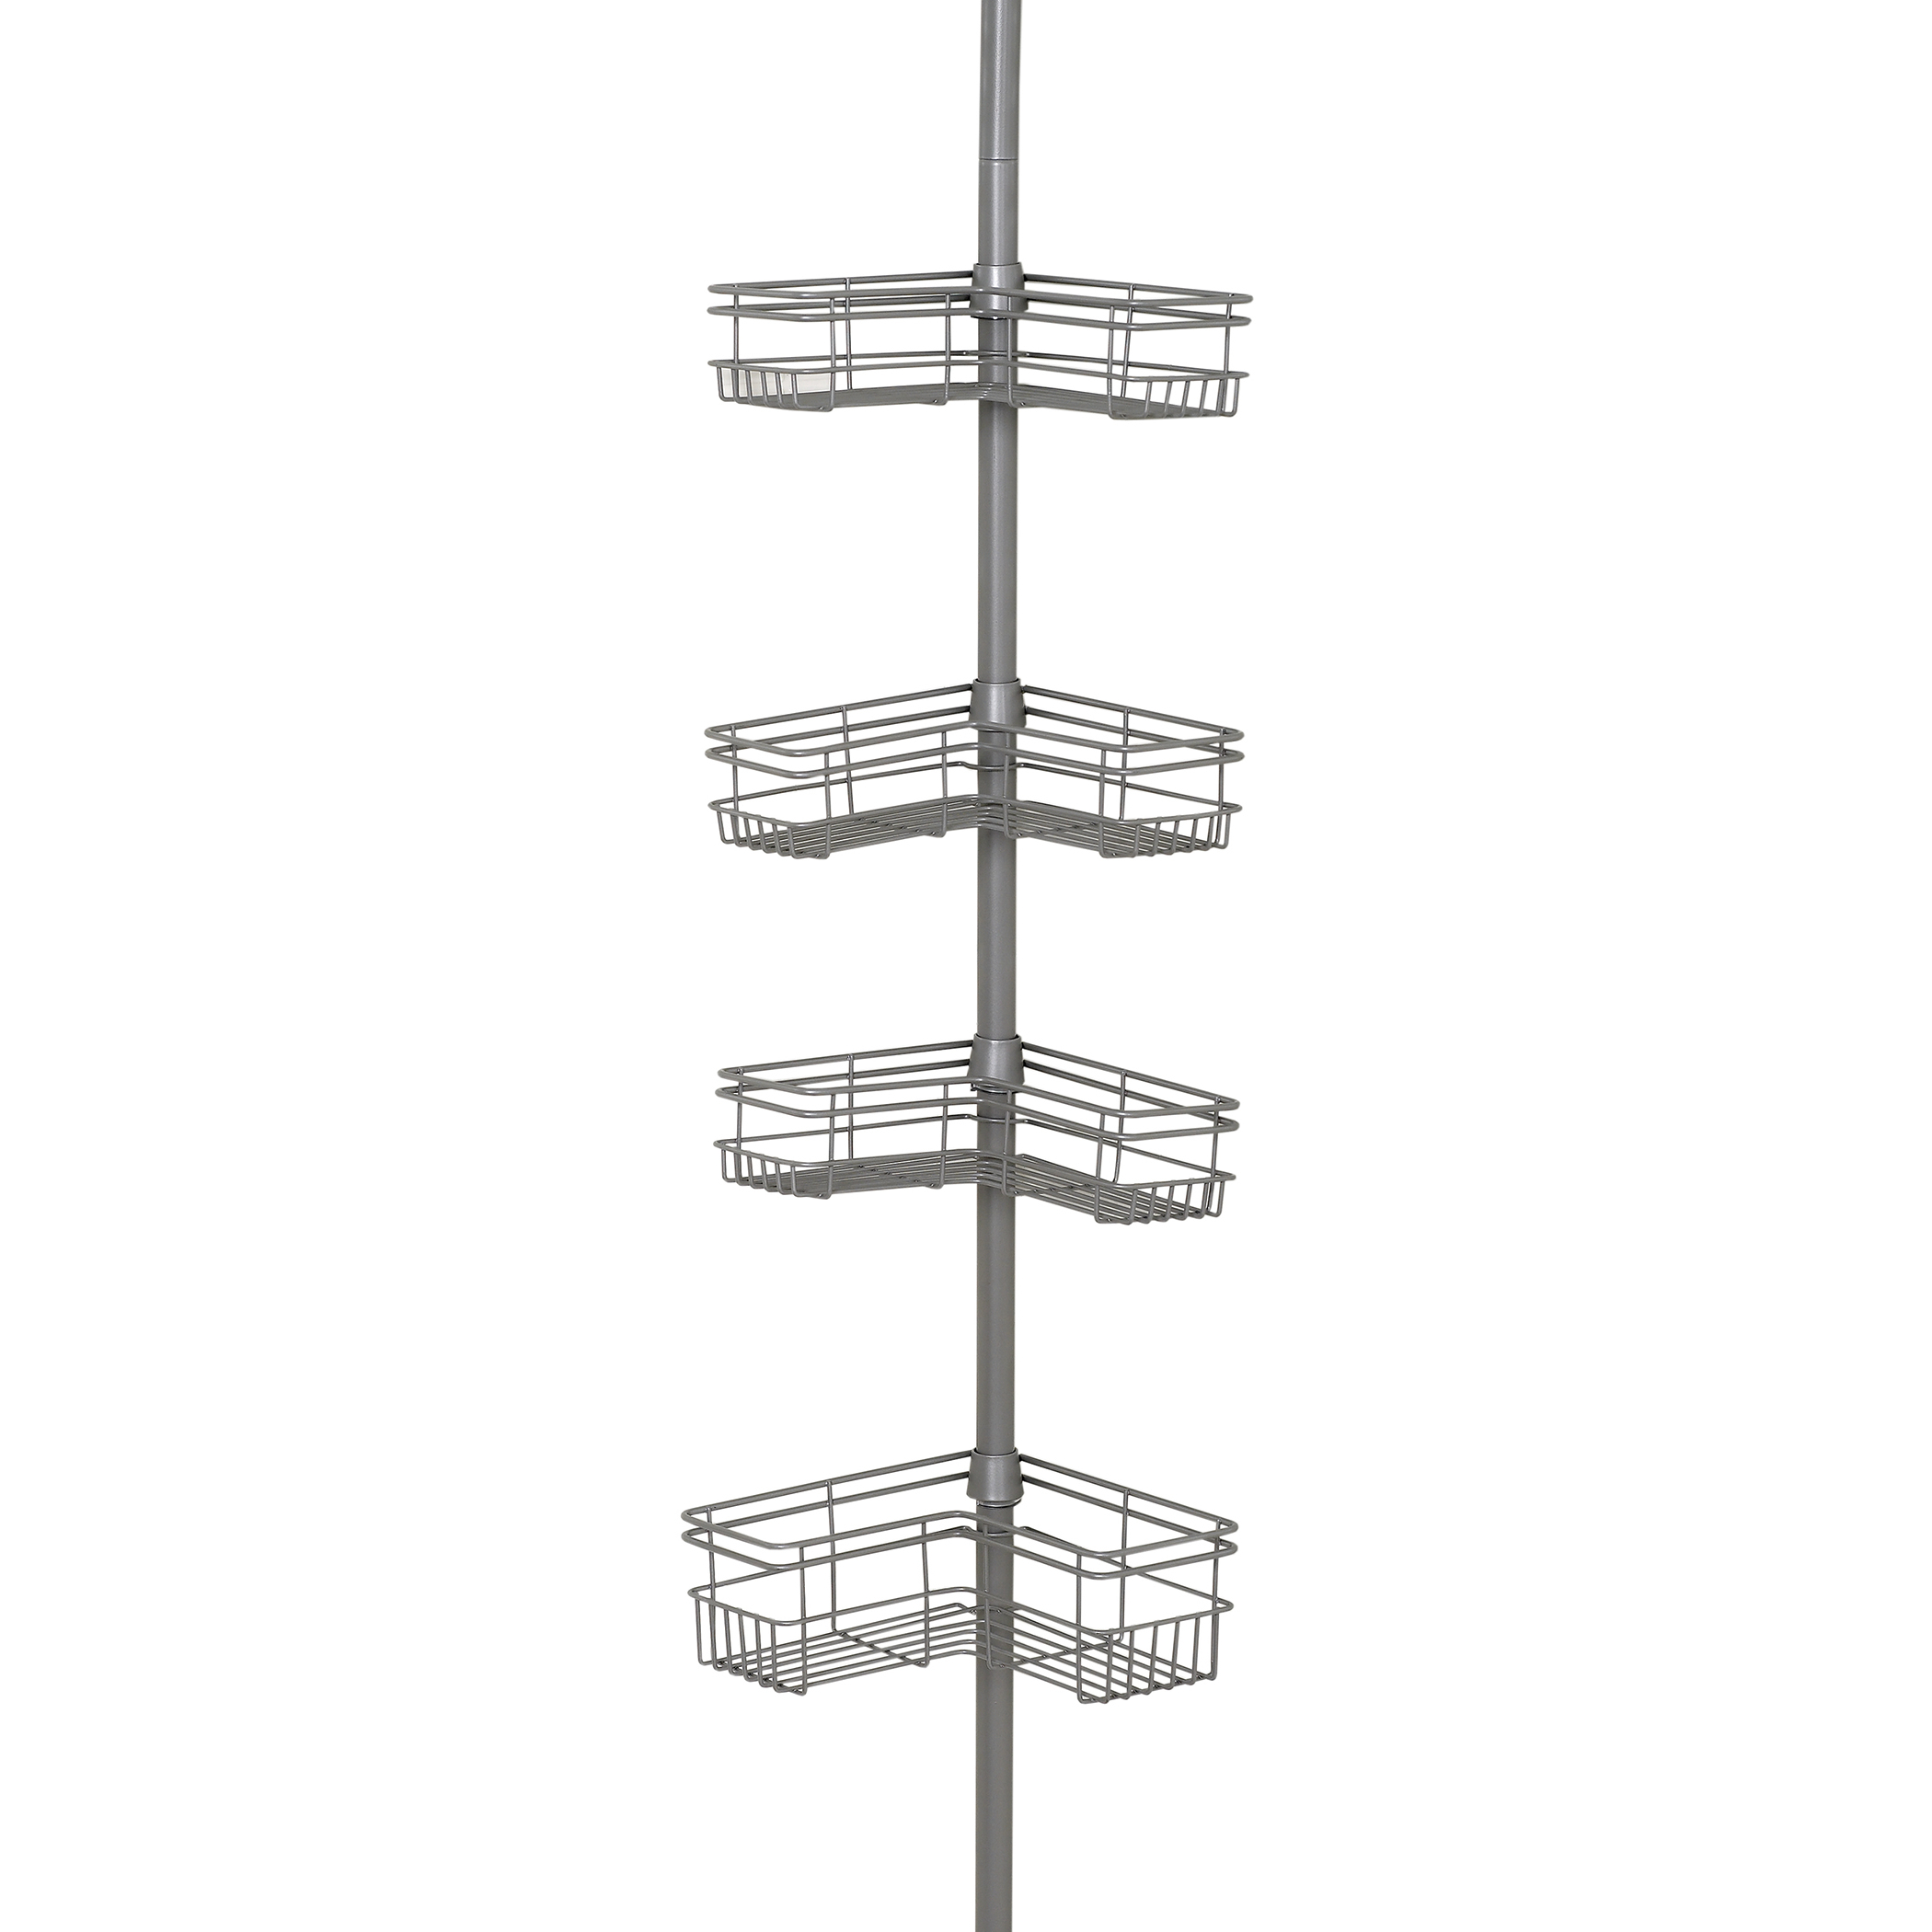 Zenna Home L-Shaped Tension Corner Pole Shower Caddy, Satin Nickel